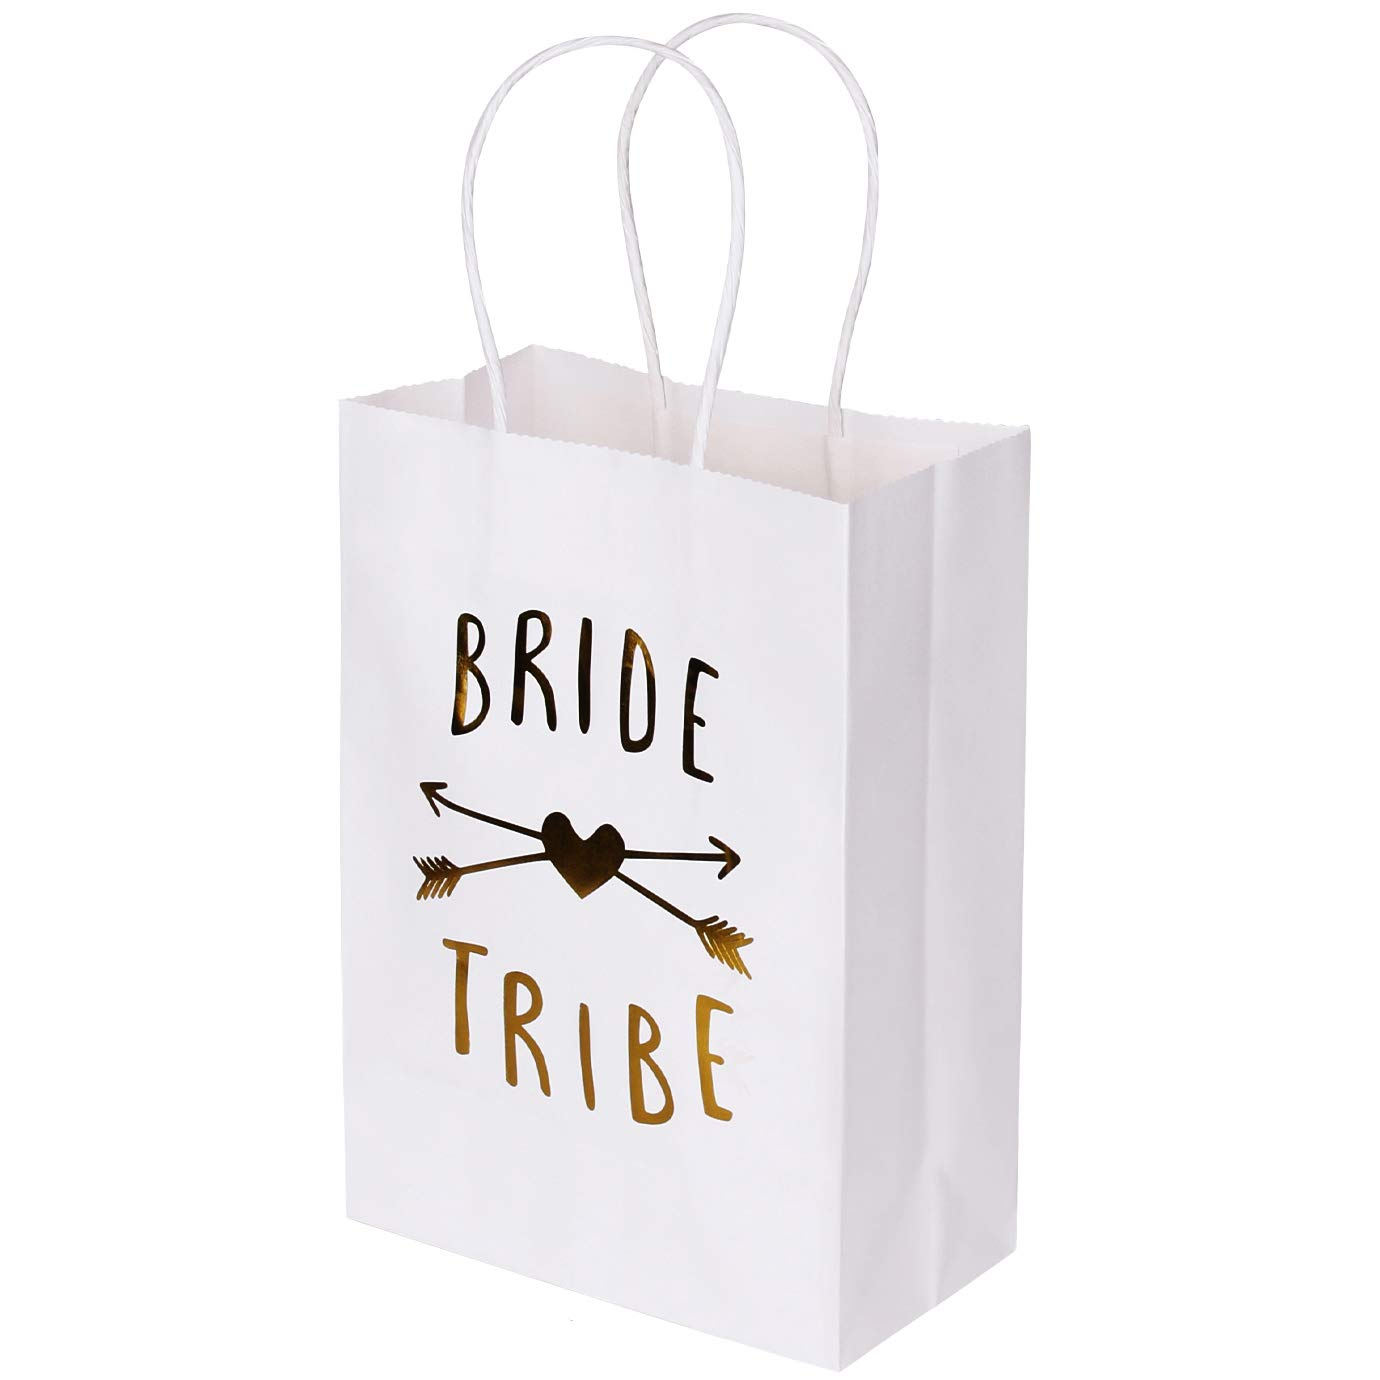 Bachelorette Party Bags Set of 12 - PojoTech Bachelorette Party Bride Tribe Gifts Bags Party Supplies Decorations for Wedding Bridal Party Bachelorette Party (White)